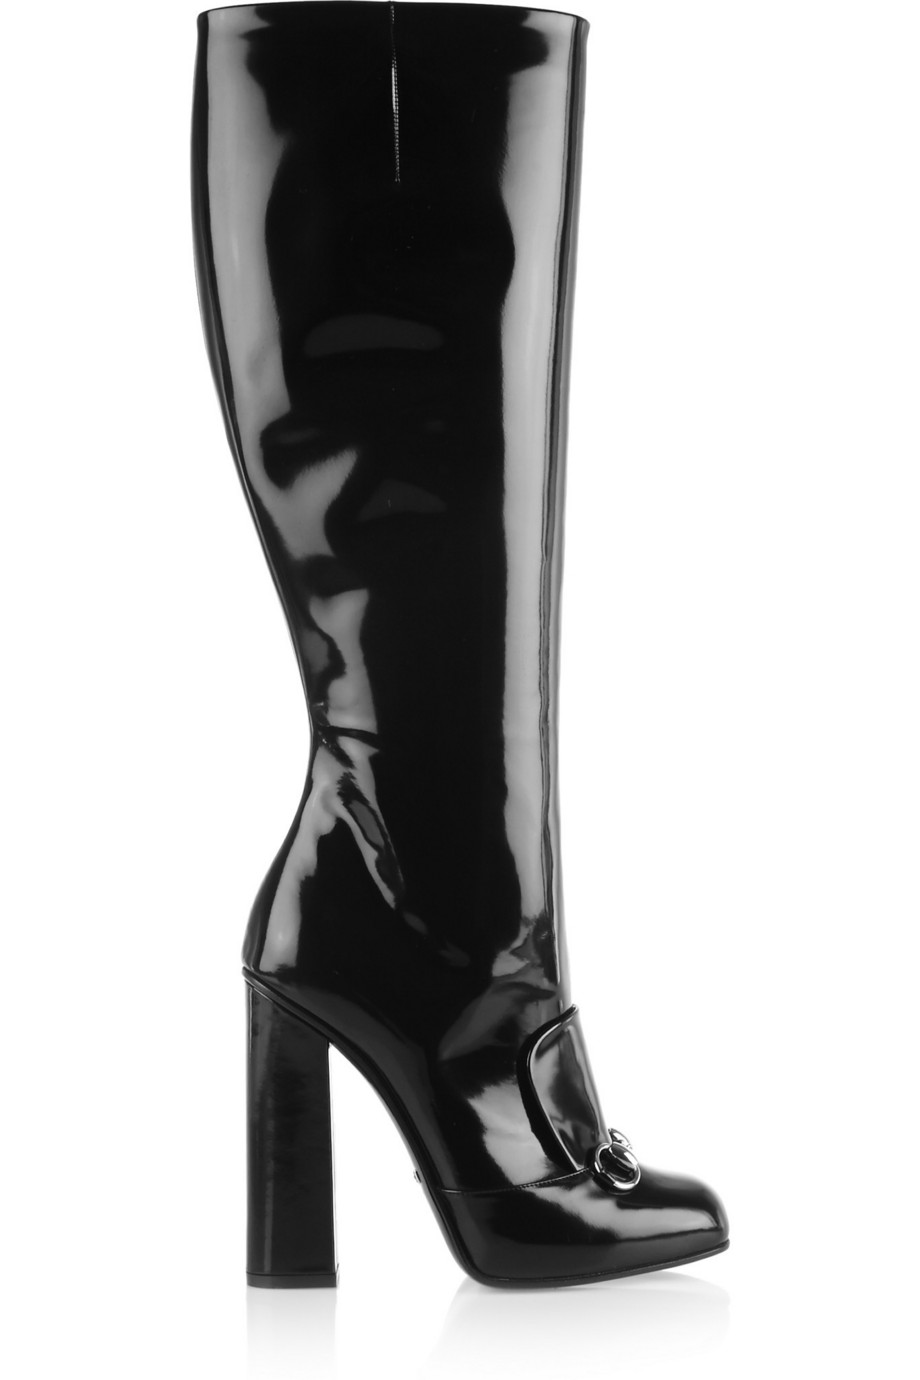 Gucci Horsebit-Detailed Patent-Leather Knee Boots, Black, Women's US Size: 10, Size: 40.5